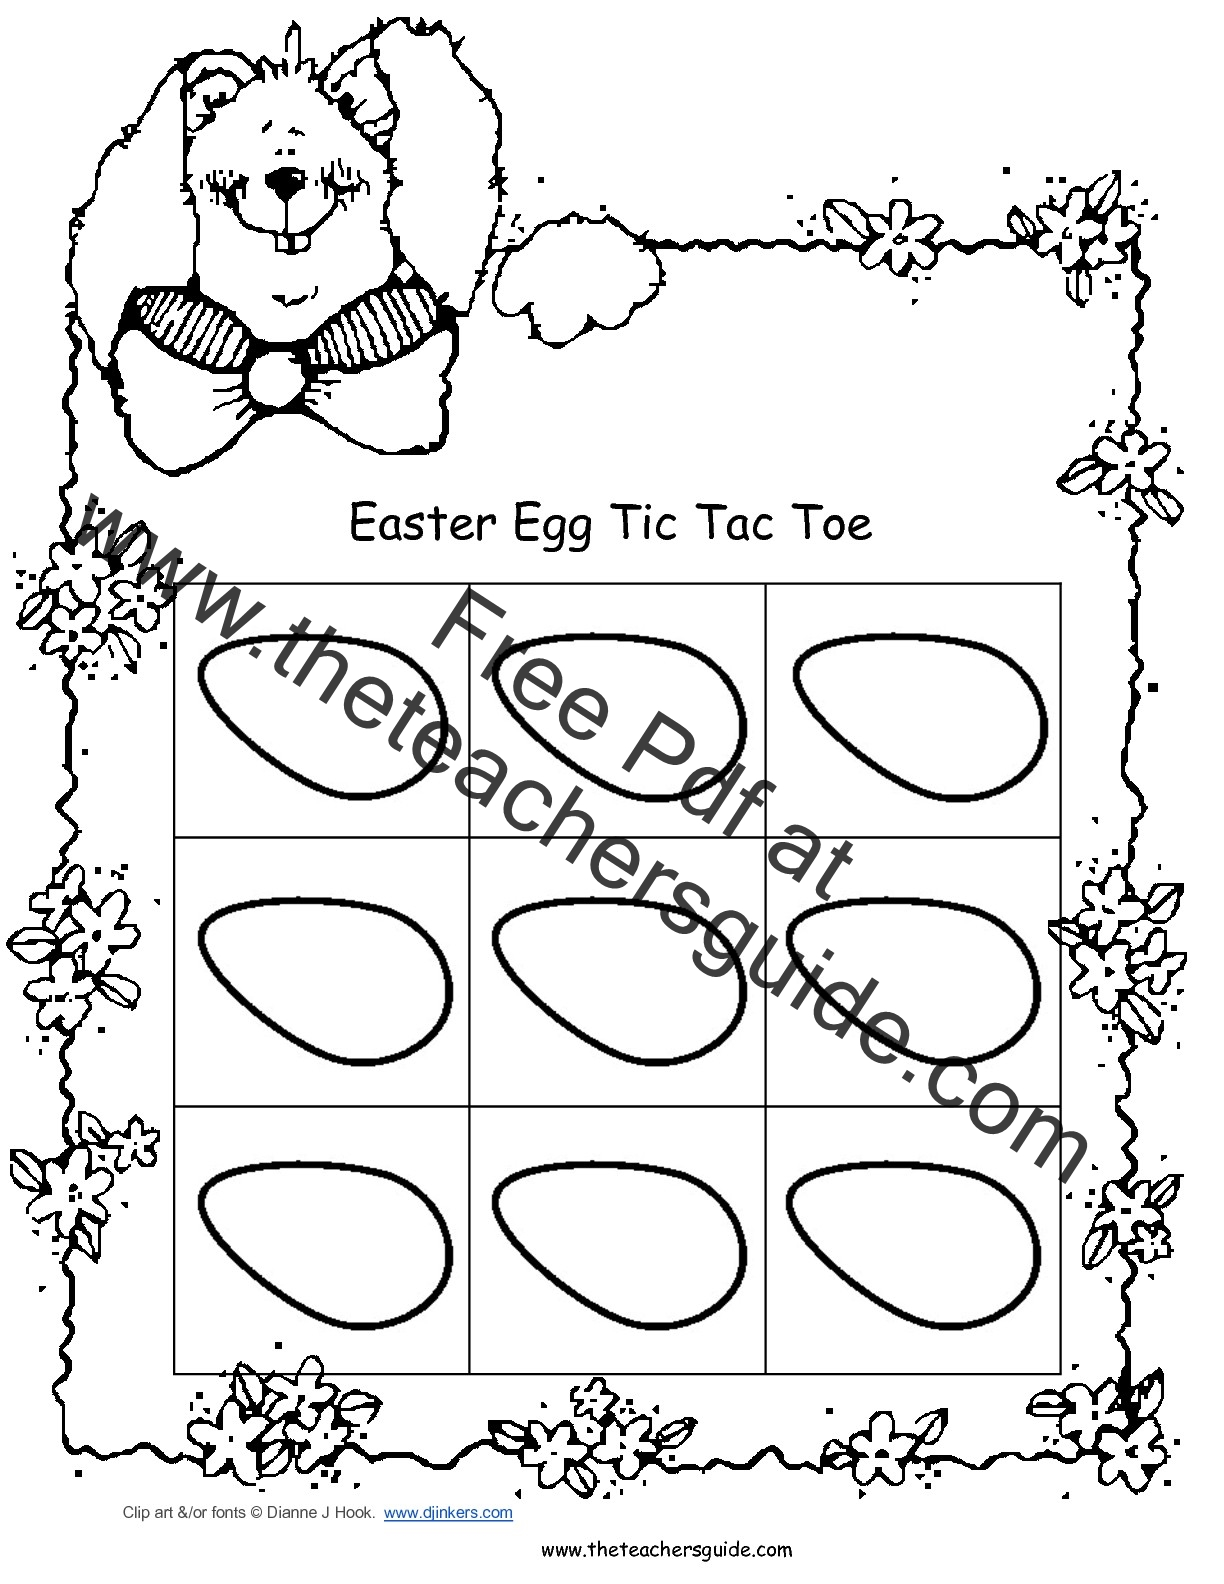 Easter Lesson PLans, Themes, Printouts, Crafts, and Clip Art